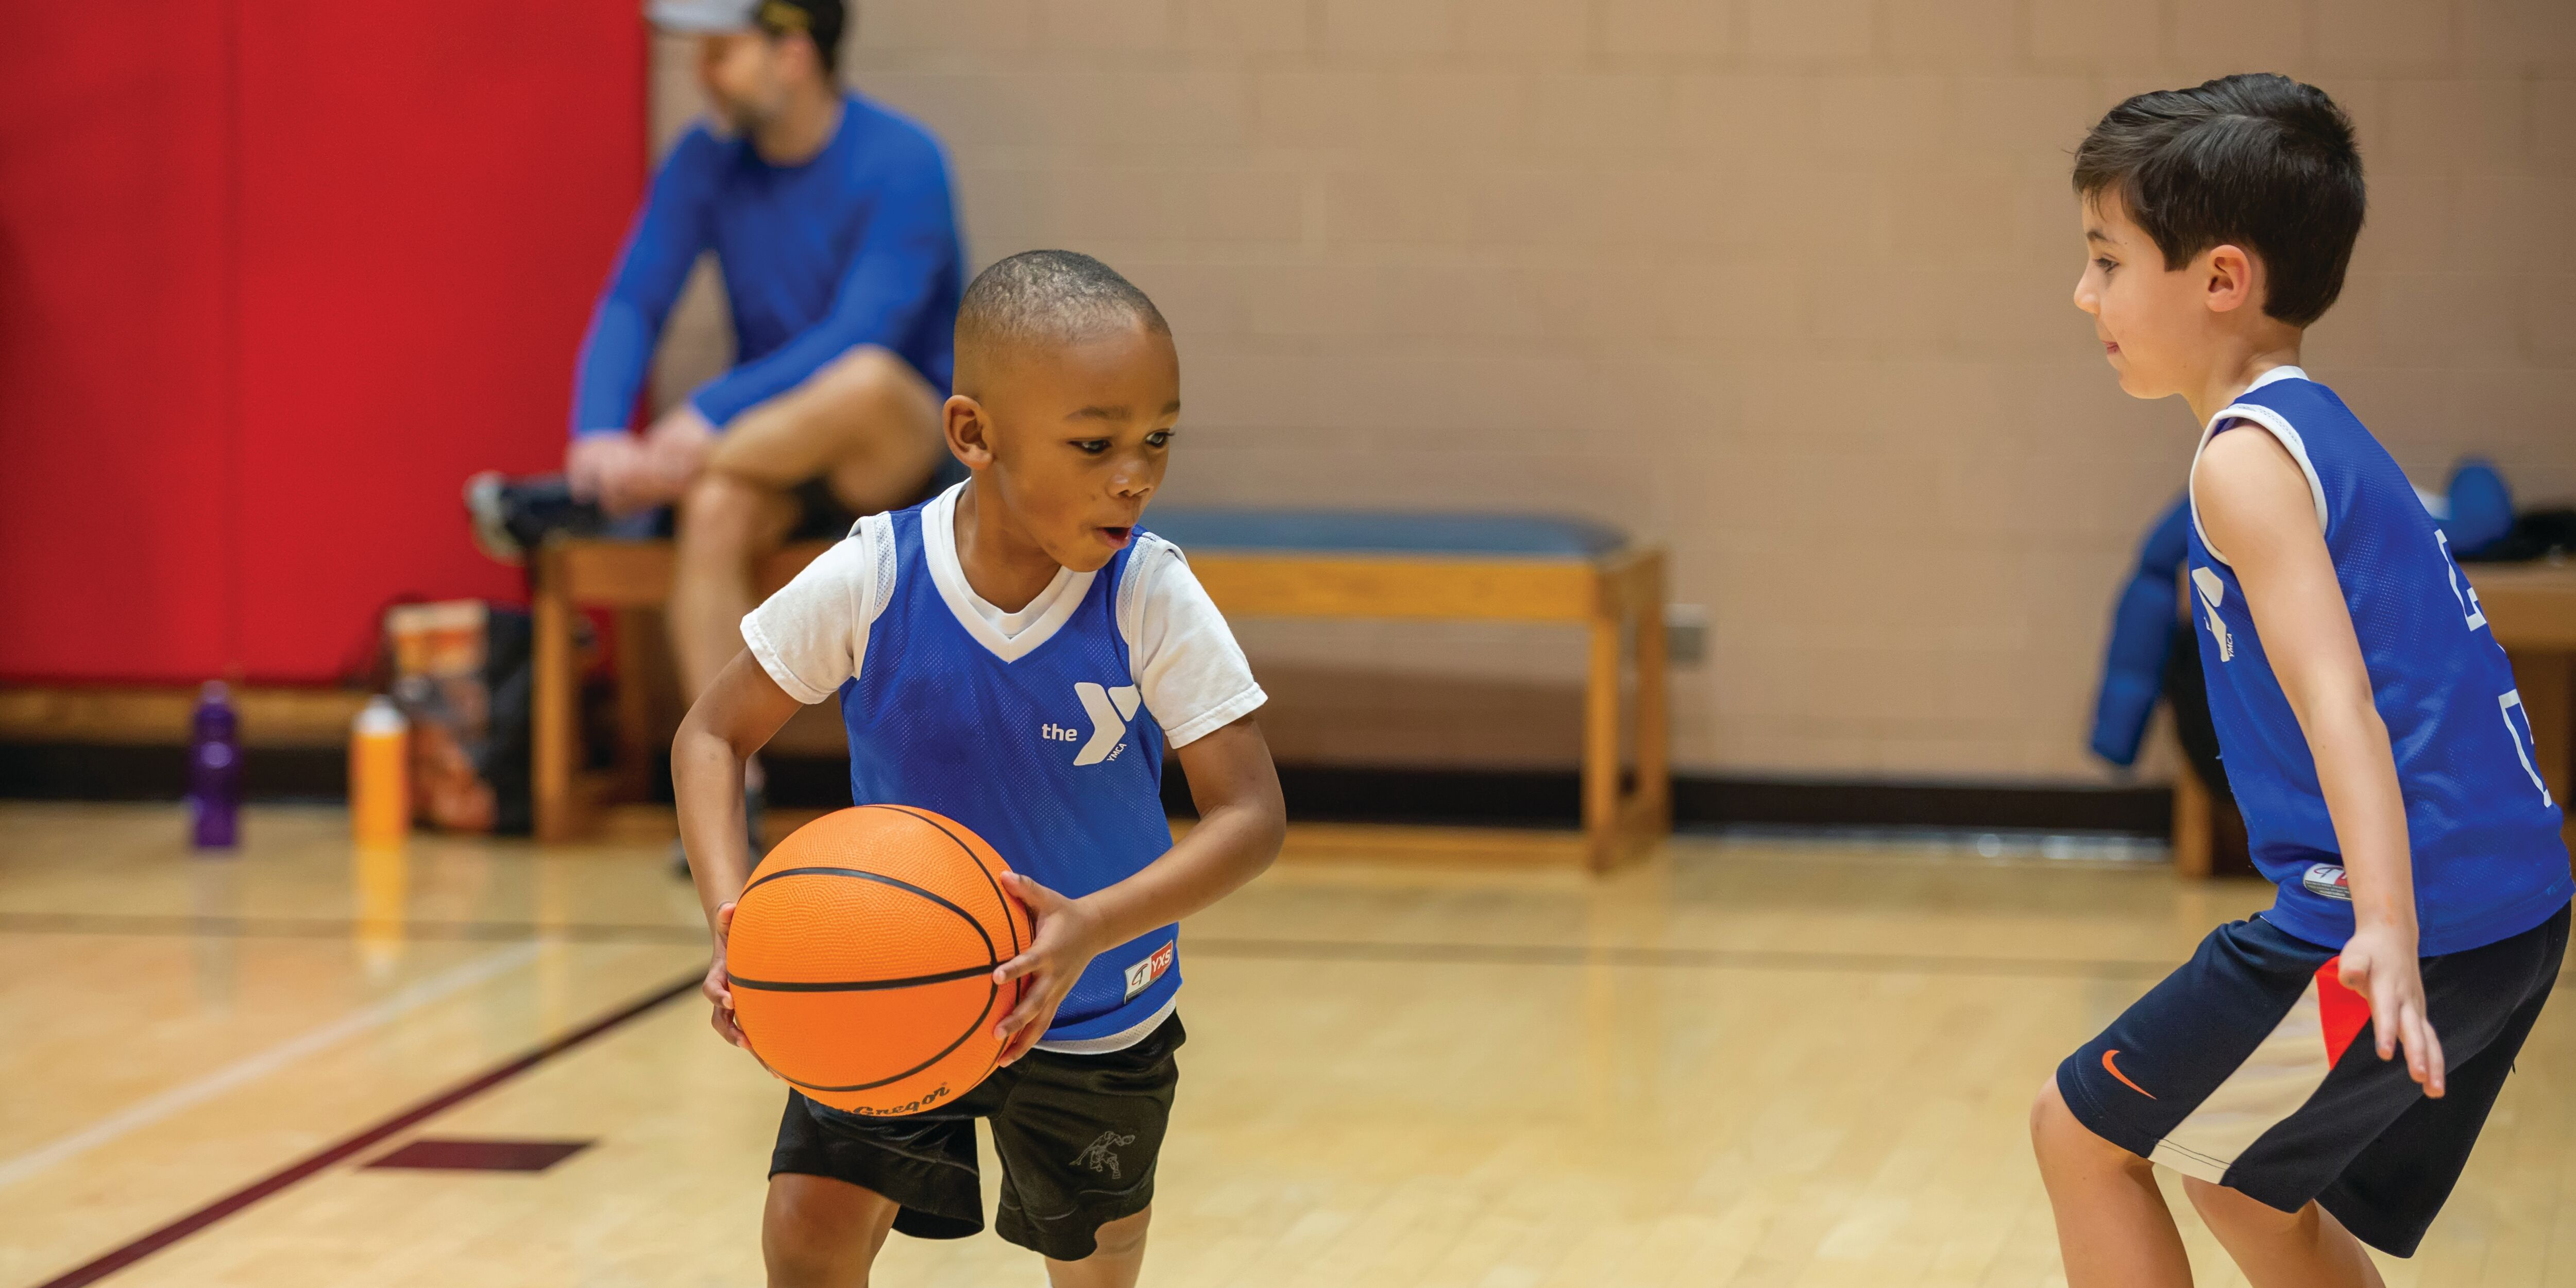 Youth Development Youth Sports